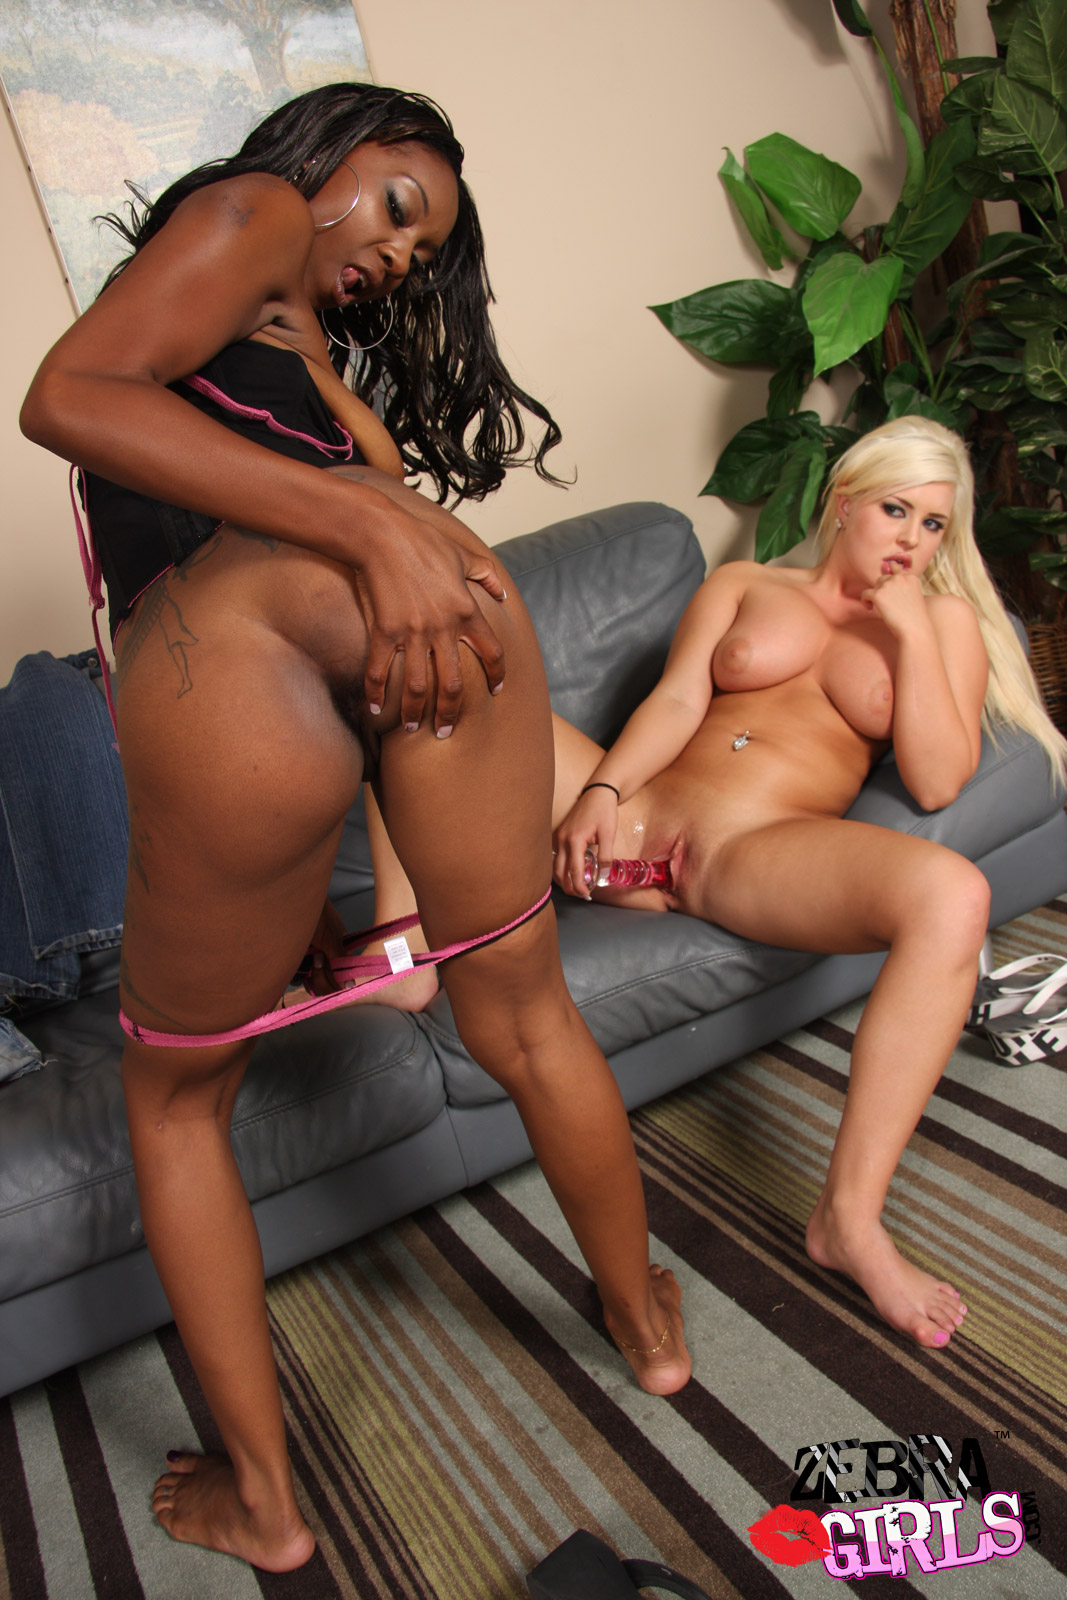 Sexy! Love interacial lesbian web sites sexy. How can